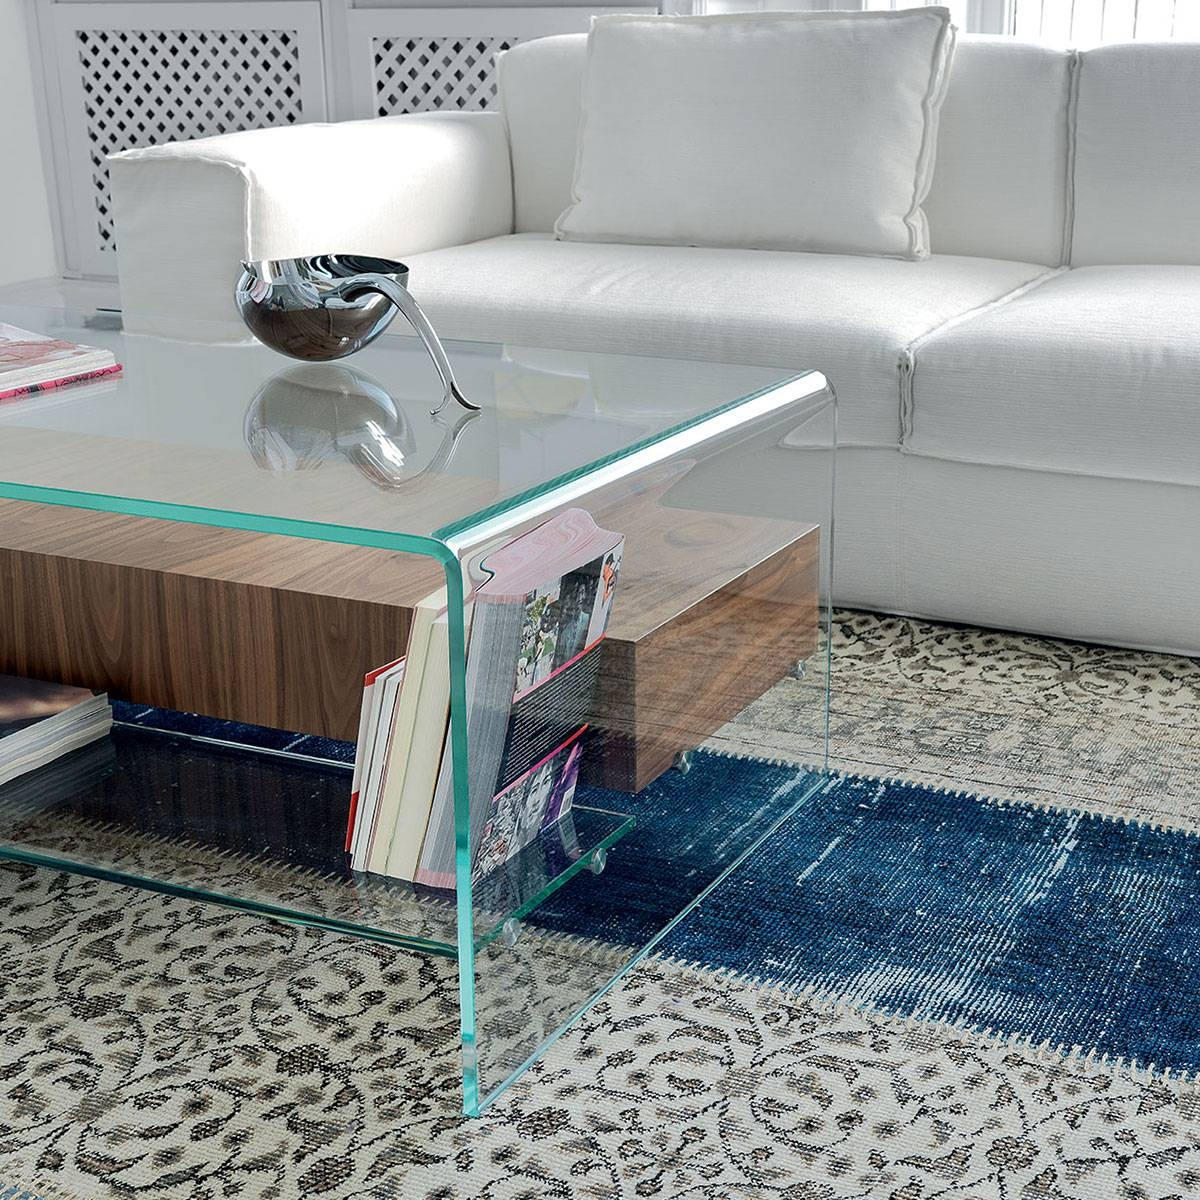 Bridge Glass Coffee Table With Shelf And Drawer - Klarity - Glass inside Glass Coffee Tables With Shelf (Image 2 of 30)